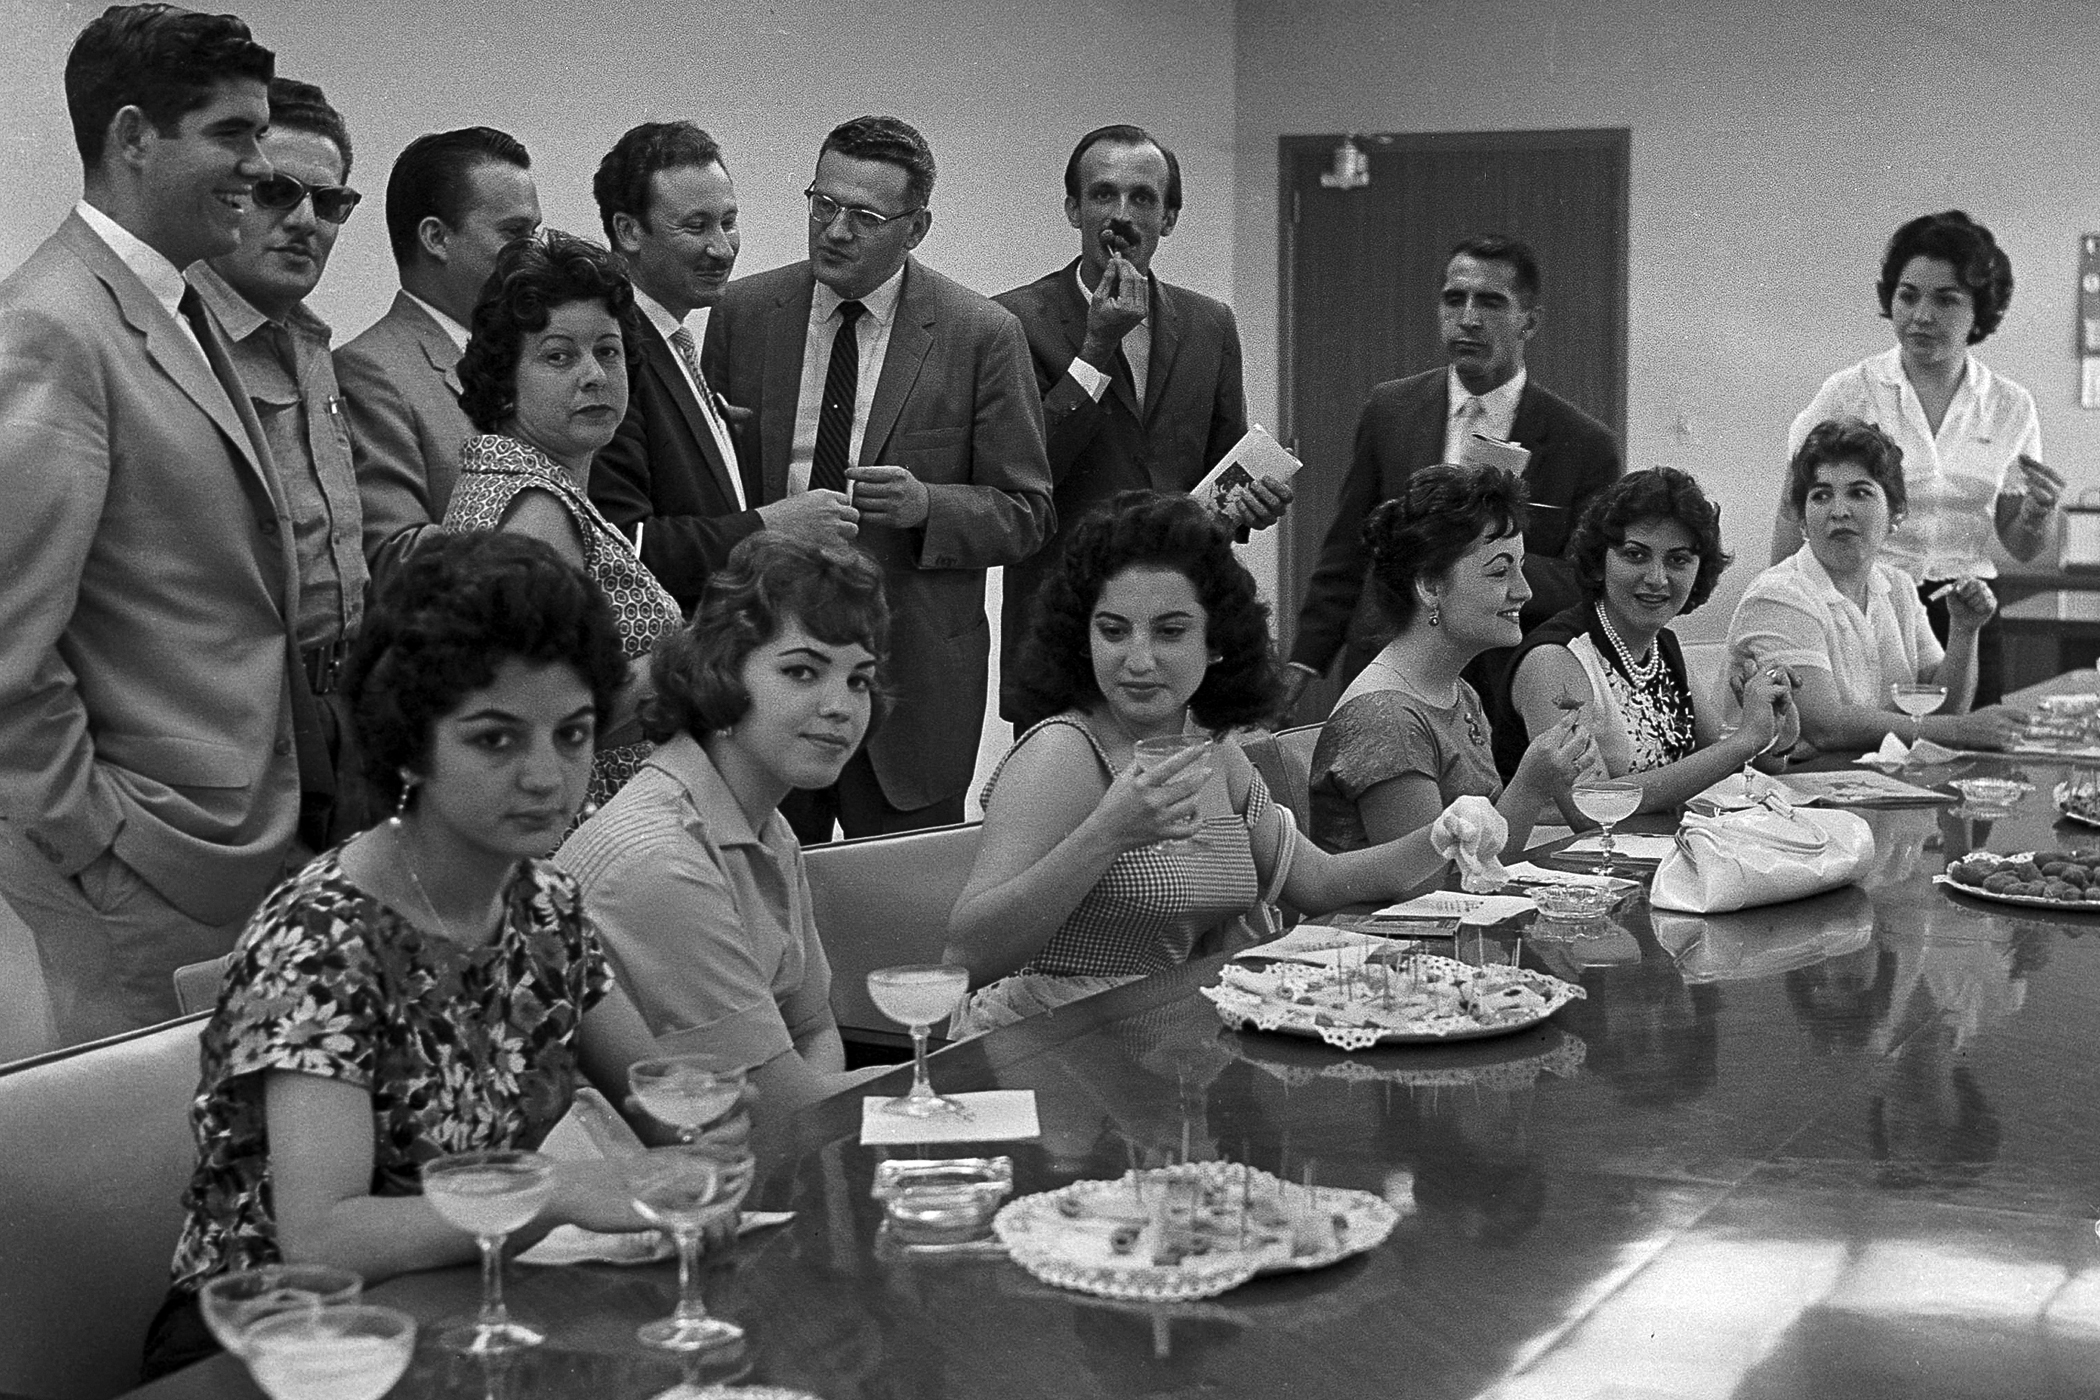 People attend a meeting at the National Institute for Agrarian Reform in Havana in January 1961.